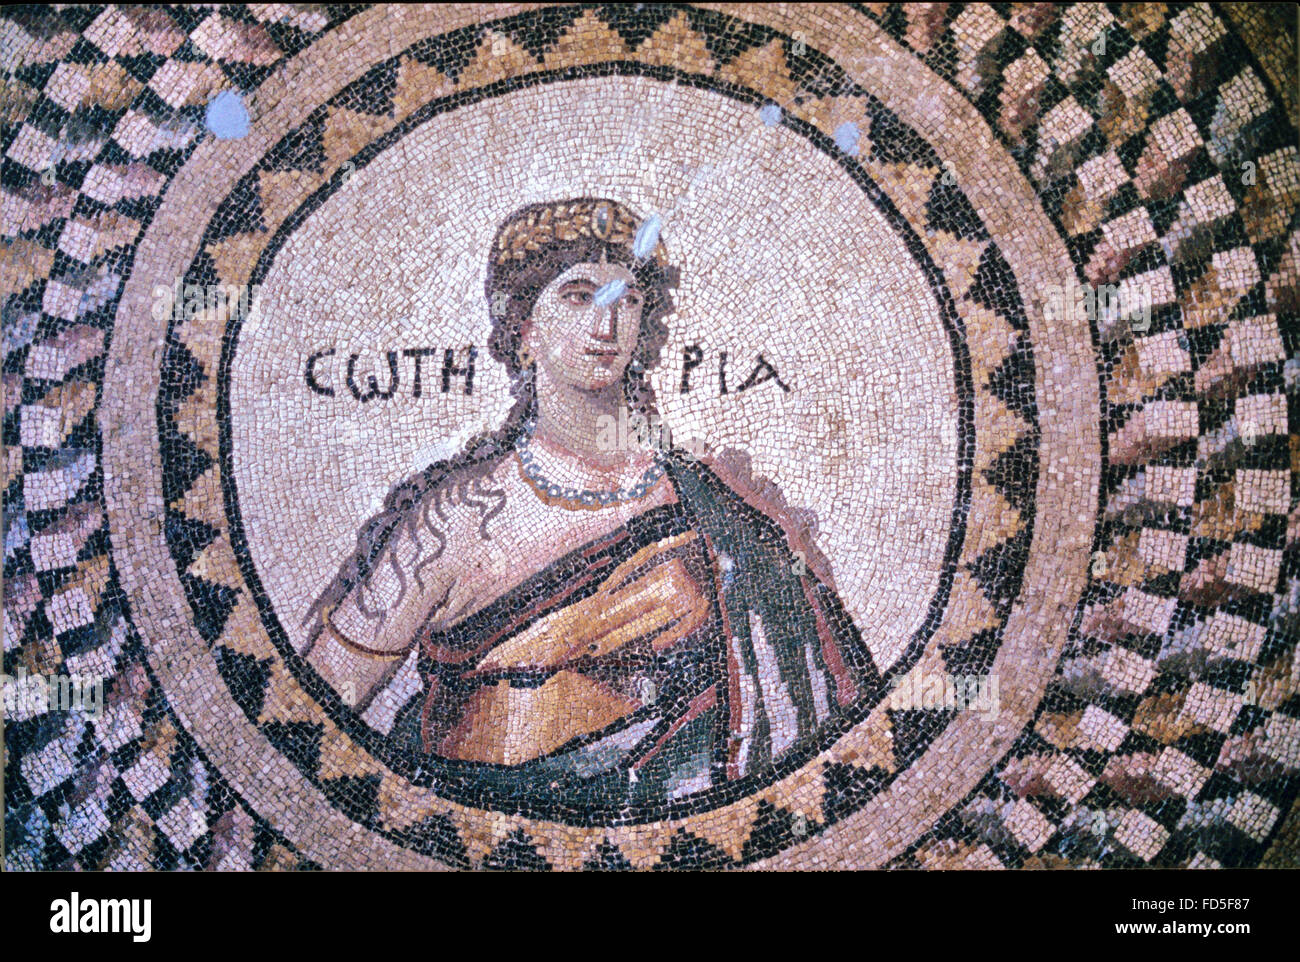 Roman Floor Mosaic of the Greek Goddess Soteria (c5th), the Personification of Salvation, or Deliverance from Harm Stock Photo